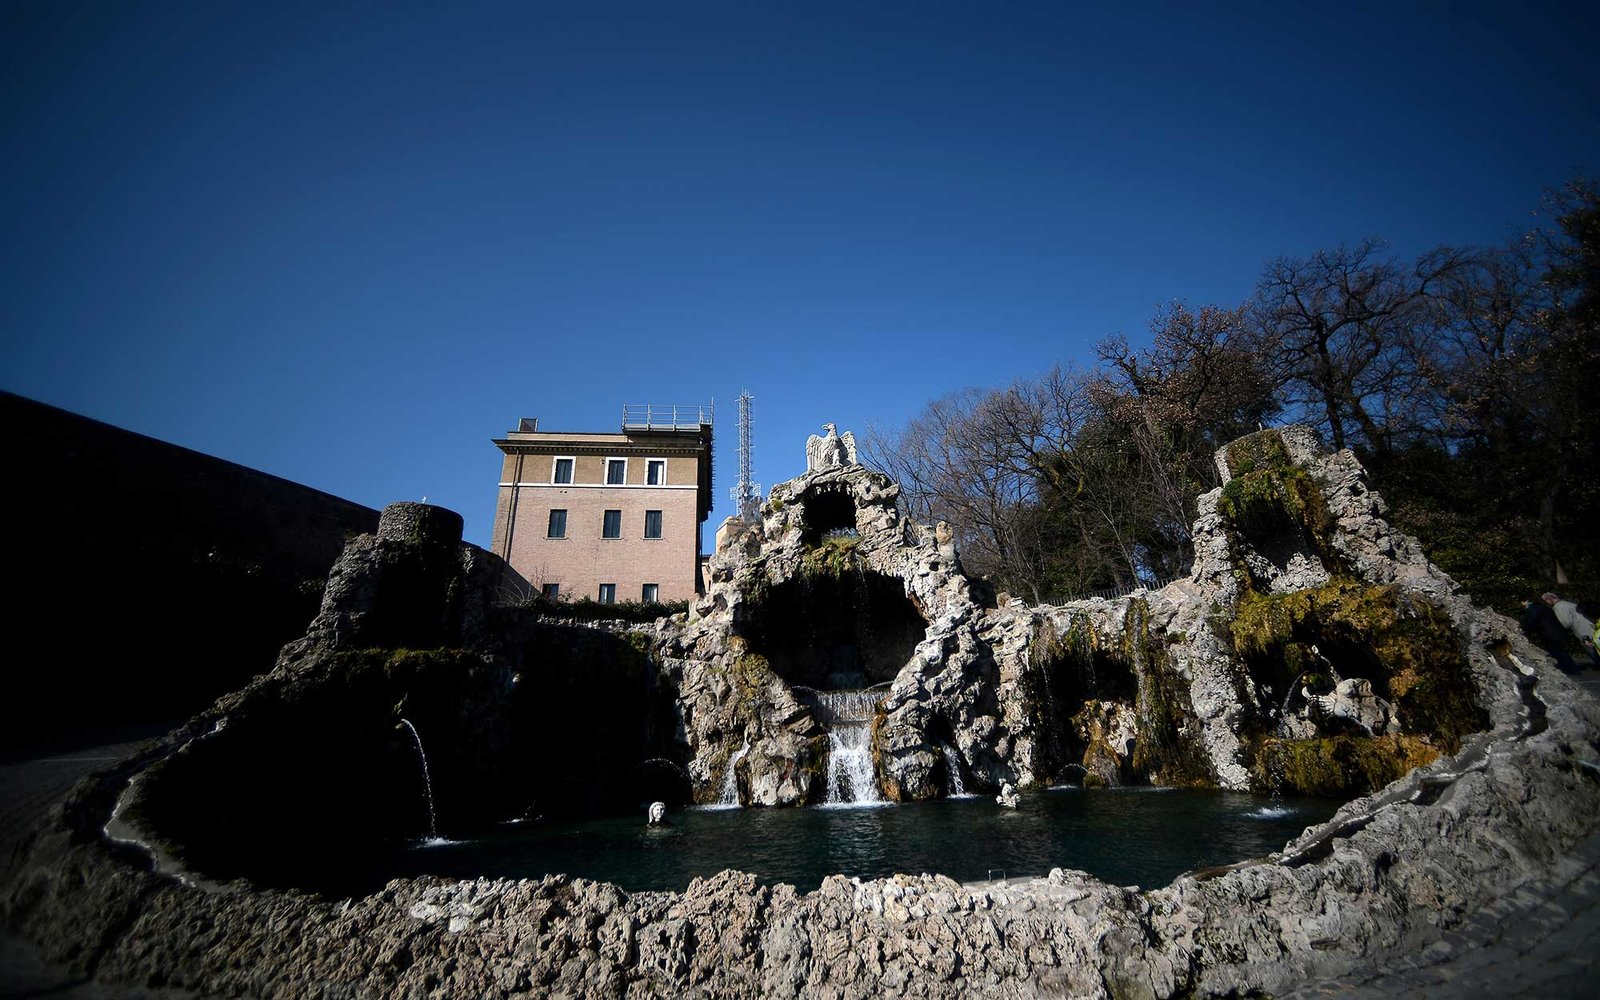 Picture taken on February 19, 2013 shows the Fontana dell'Aquilone in the gardens inside the Vatican City State. Pope Benedict XVI will be hosted in the convent of Mater Ecclesiae (Mother of the Church) offering him a substantial four-story modern home co